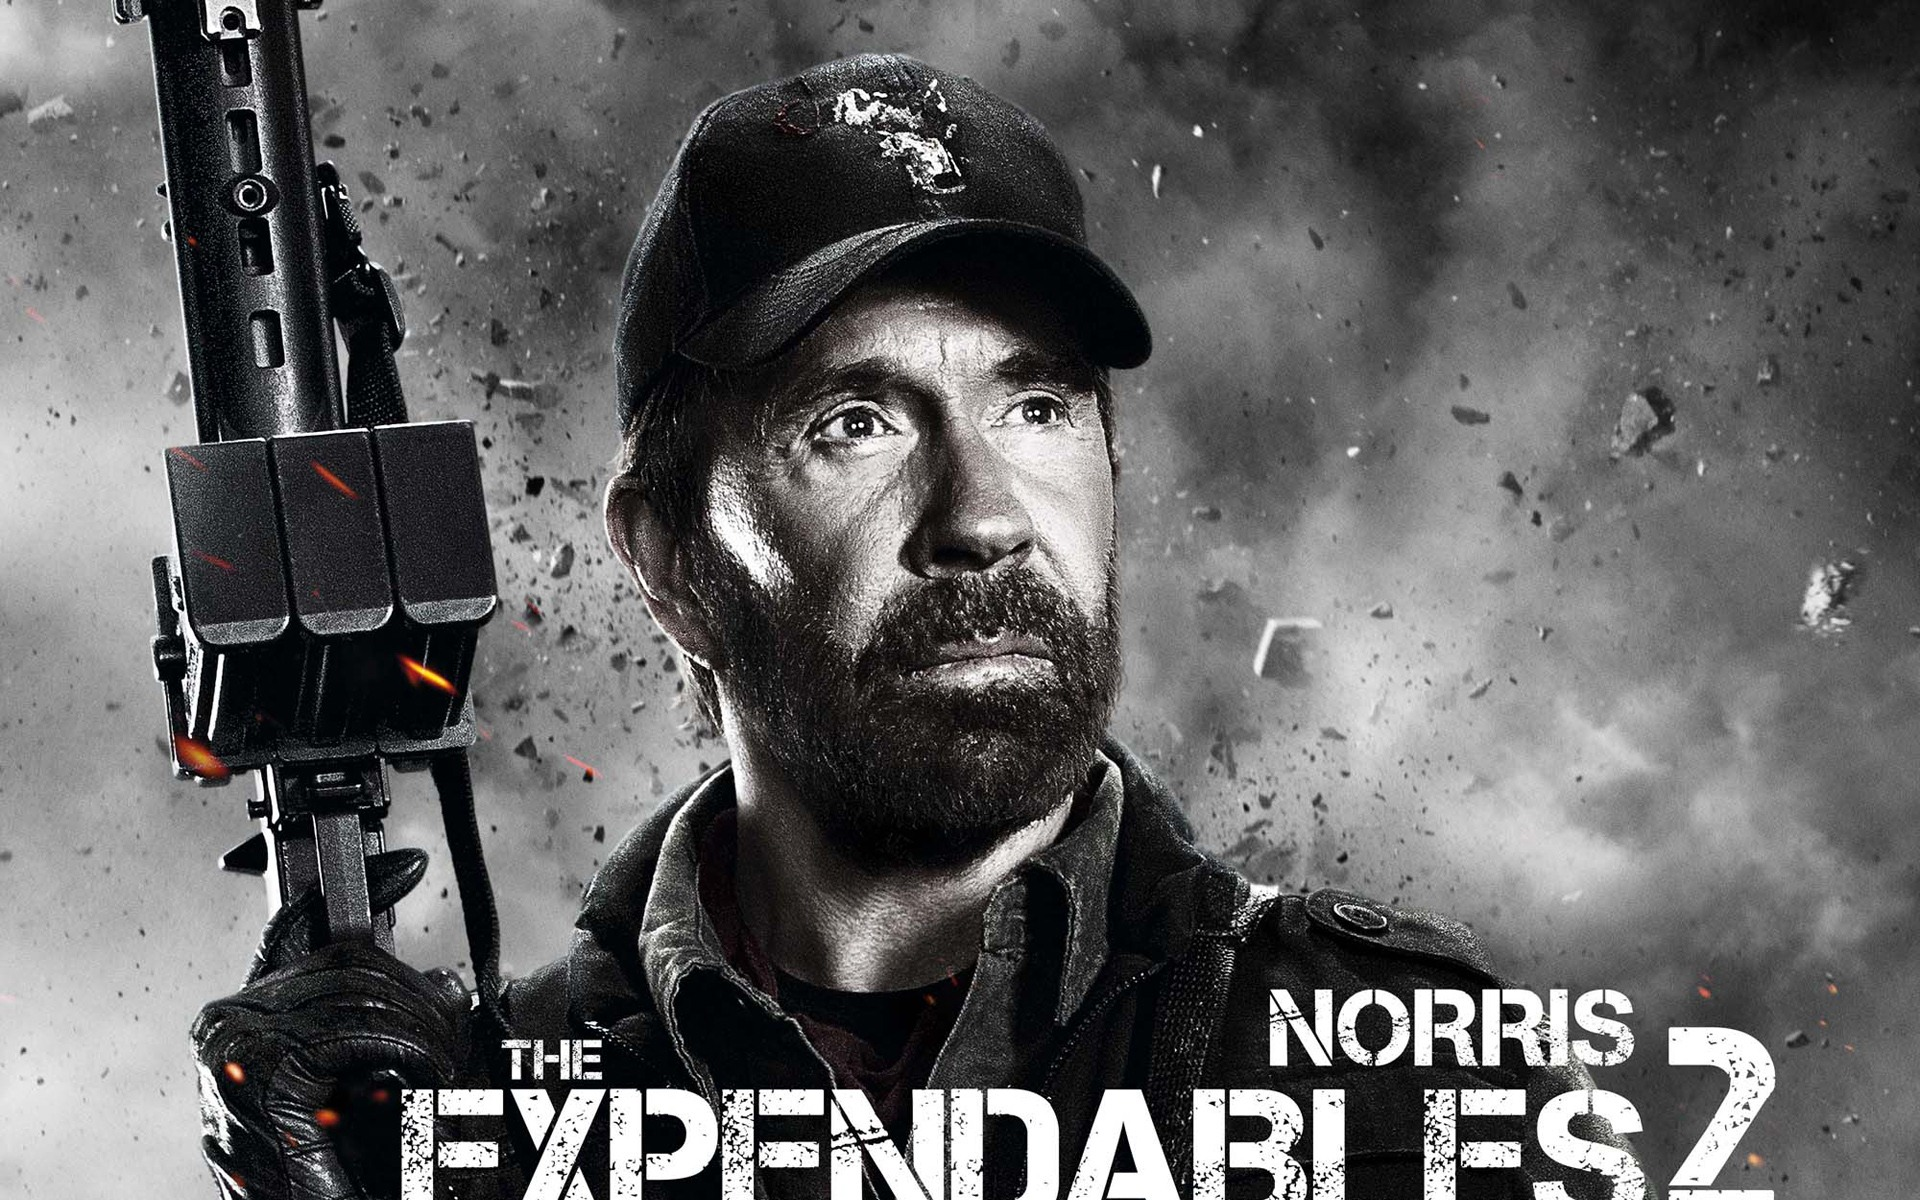 2012 the expendables 2 hd wallpapers #13 - 1920x1200 wallpaper